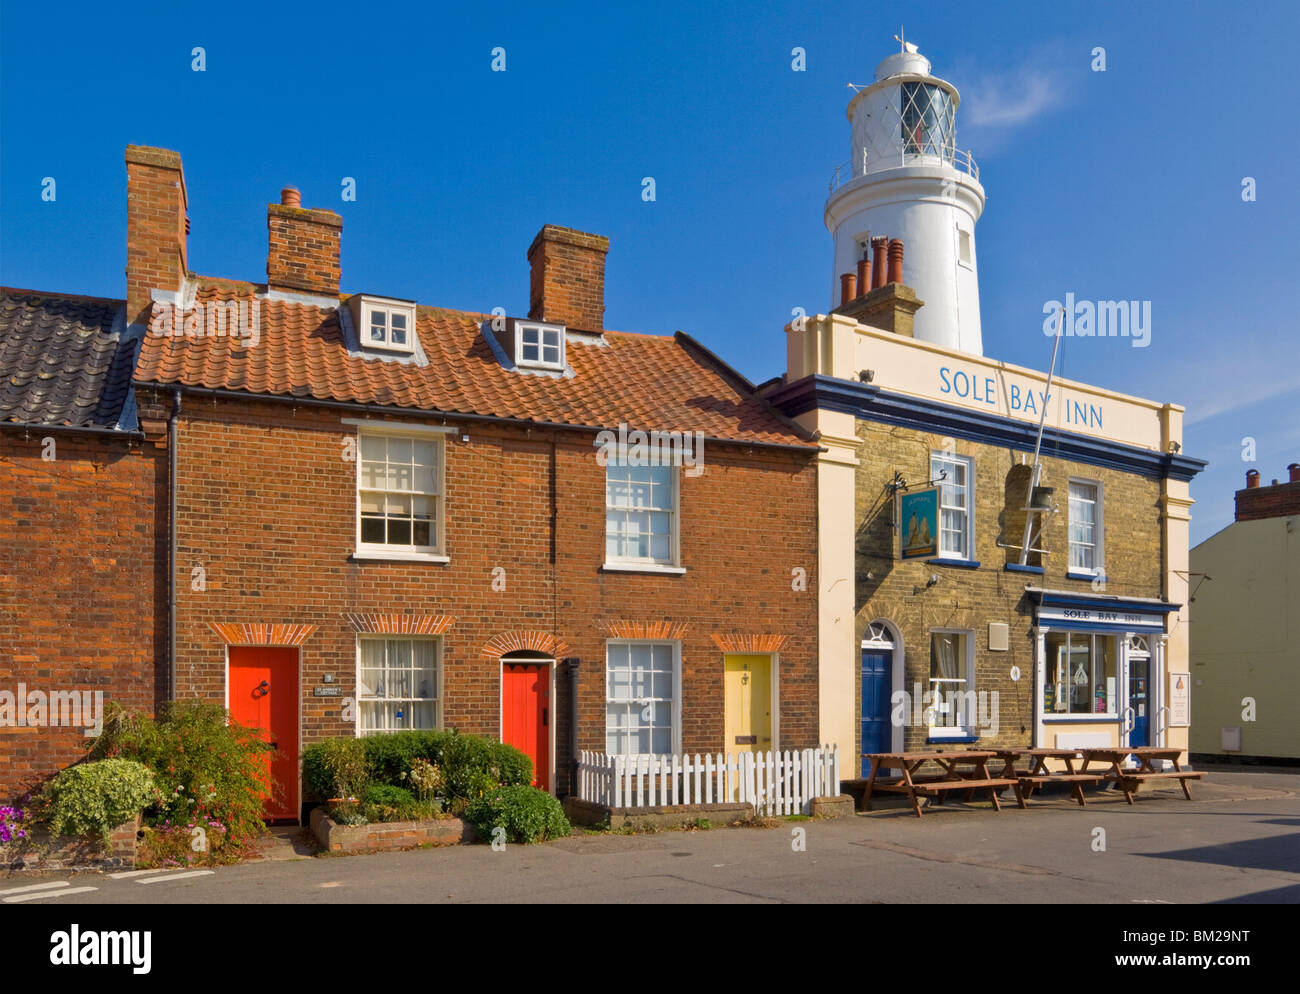 The Sole Bay Inn pub with Southwold lighthouse behind, Southwold, Suffolk, UK - Stock Image